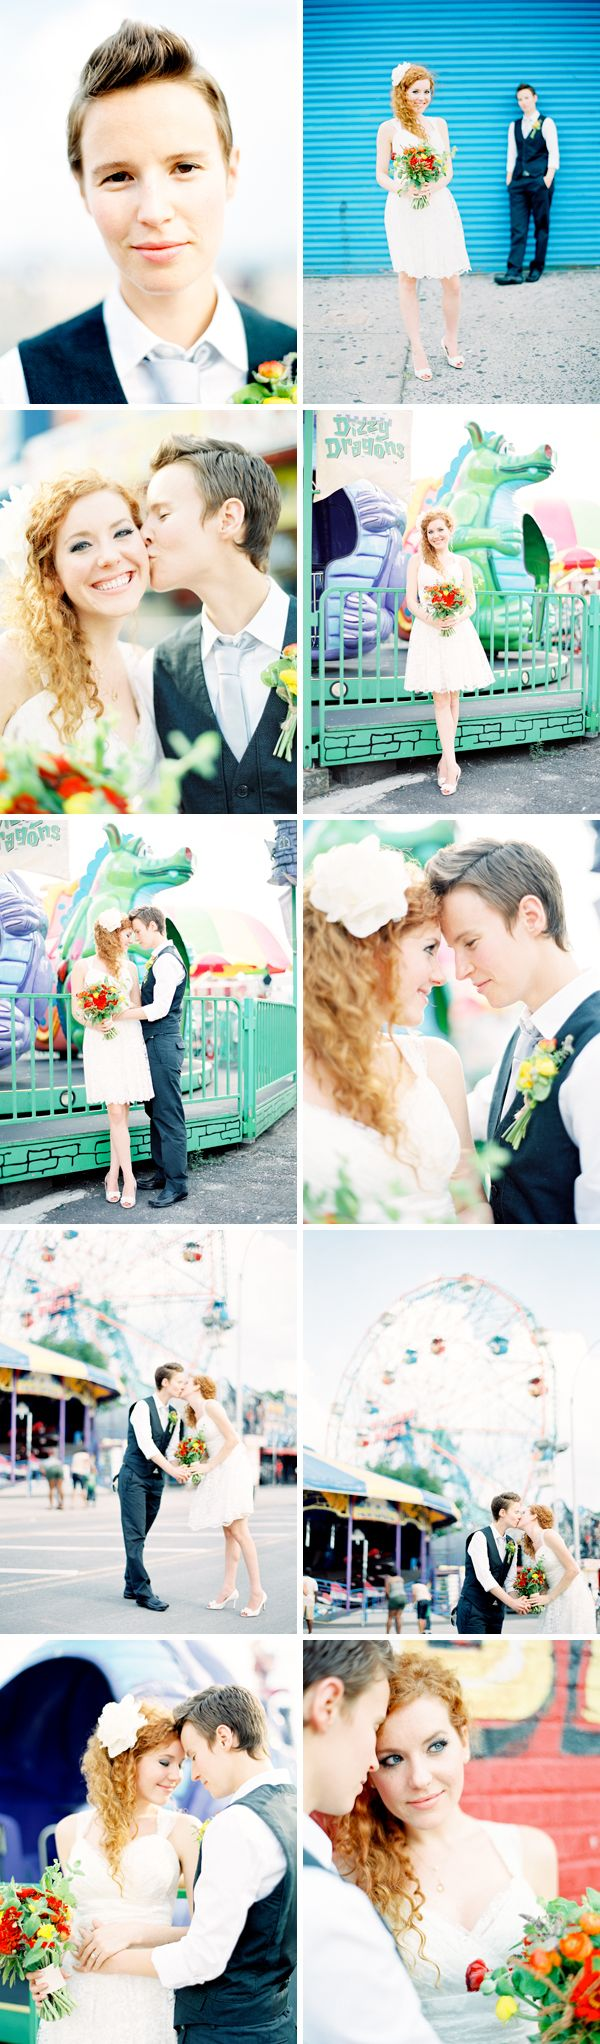 best engagement photoshoot images on pinterest weddings